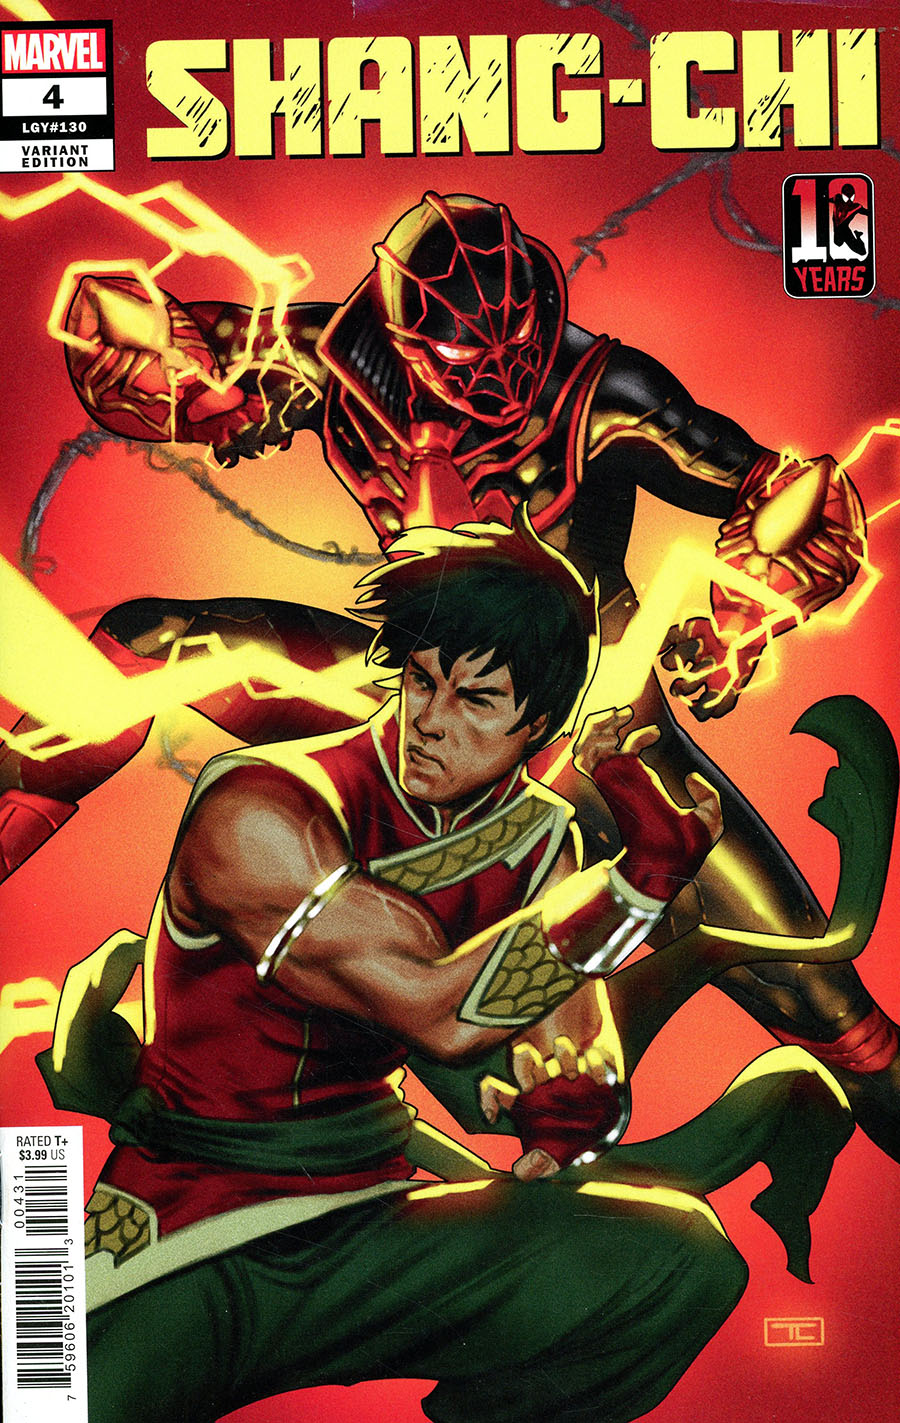 Shang-Chi Vol 2 #4 Cover B Variant Taurin Clarke Miles Morales Spider-Man 10th Anniversary Cover (Limit 1 per customer)